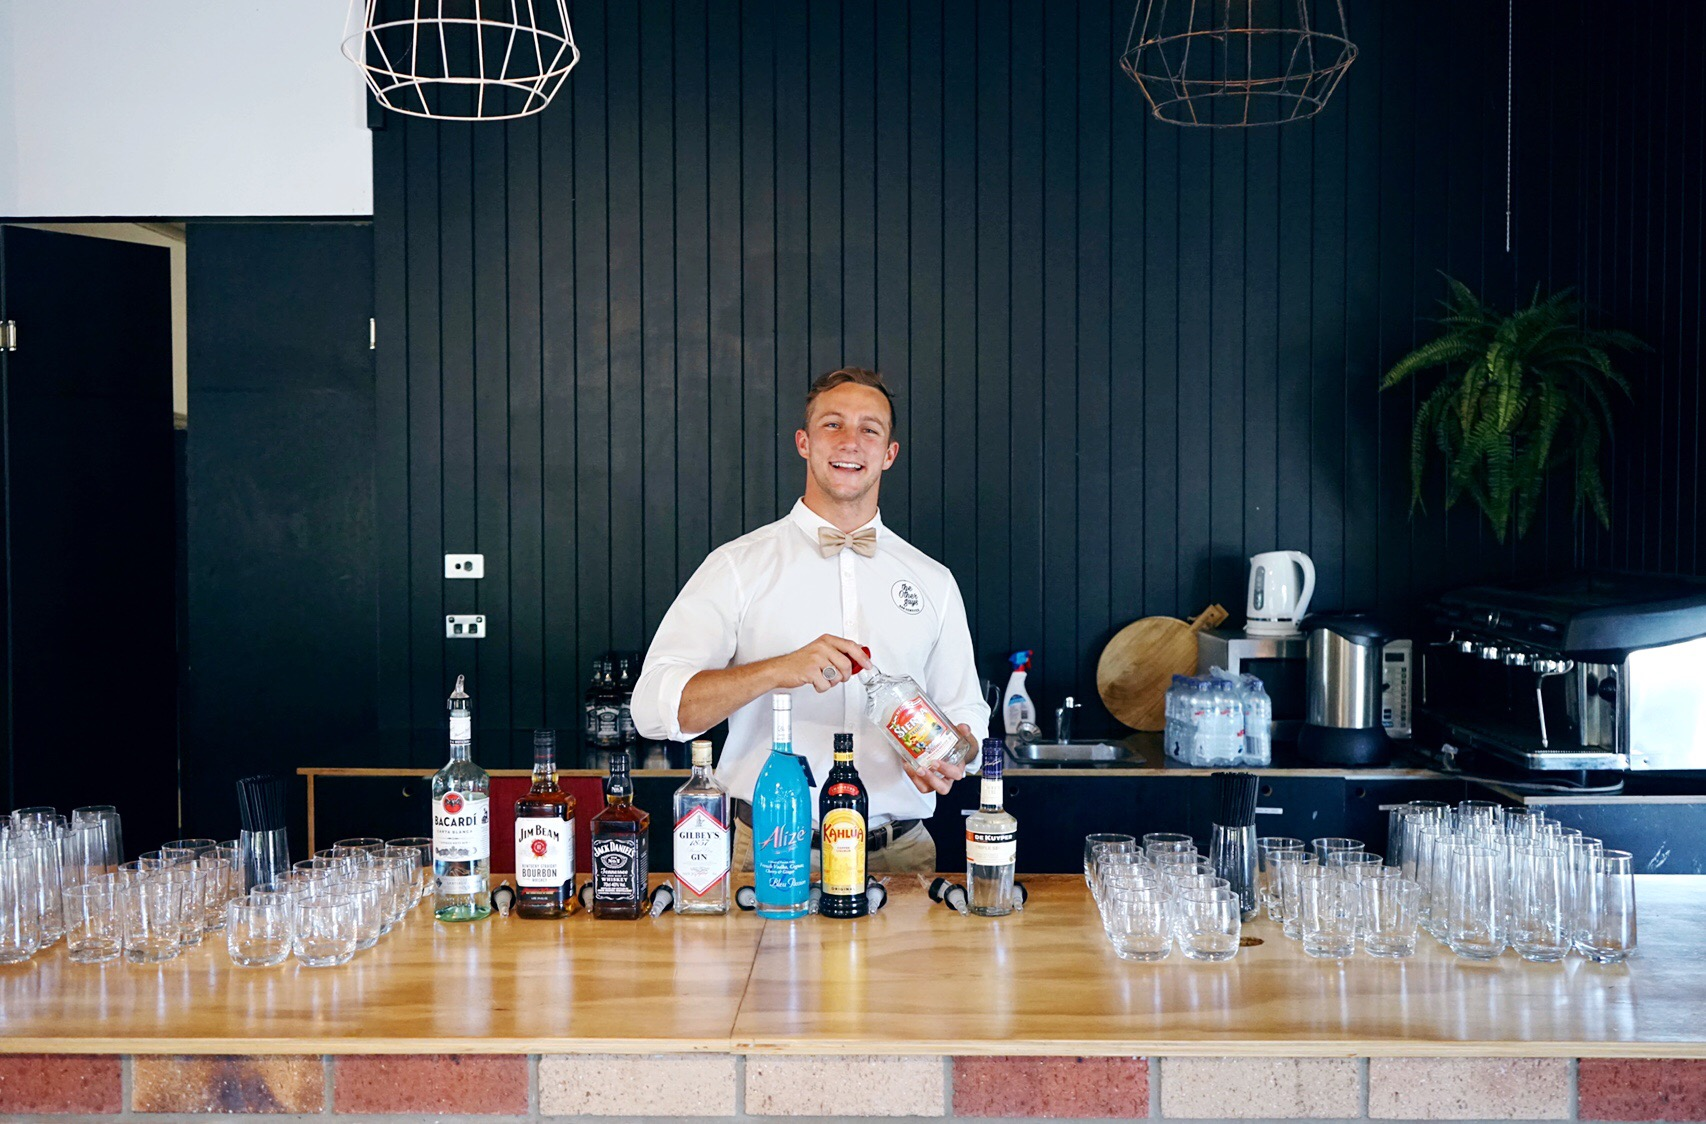 4 Well Travelled Bride The Other Guys Bar Services Wedding Hire Services Byron Bay.JPG